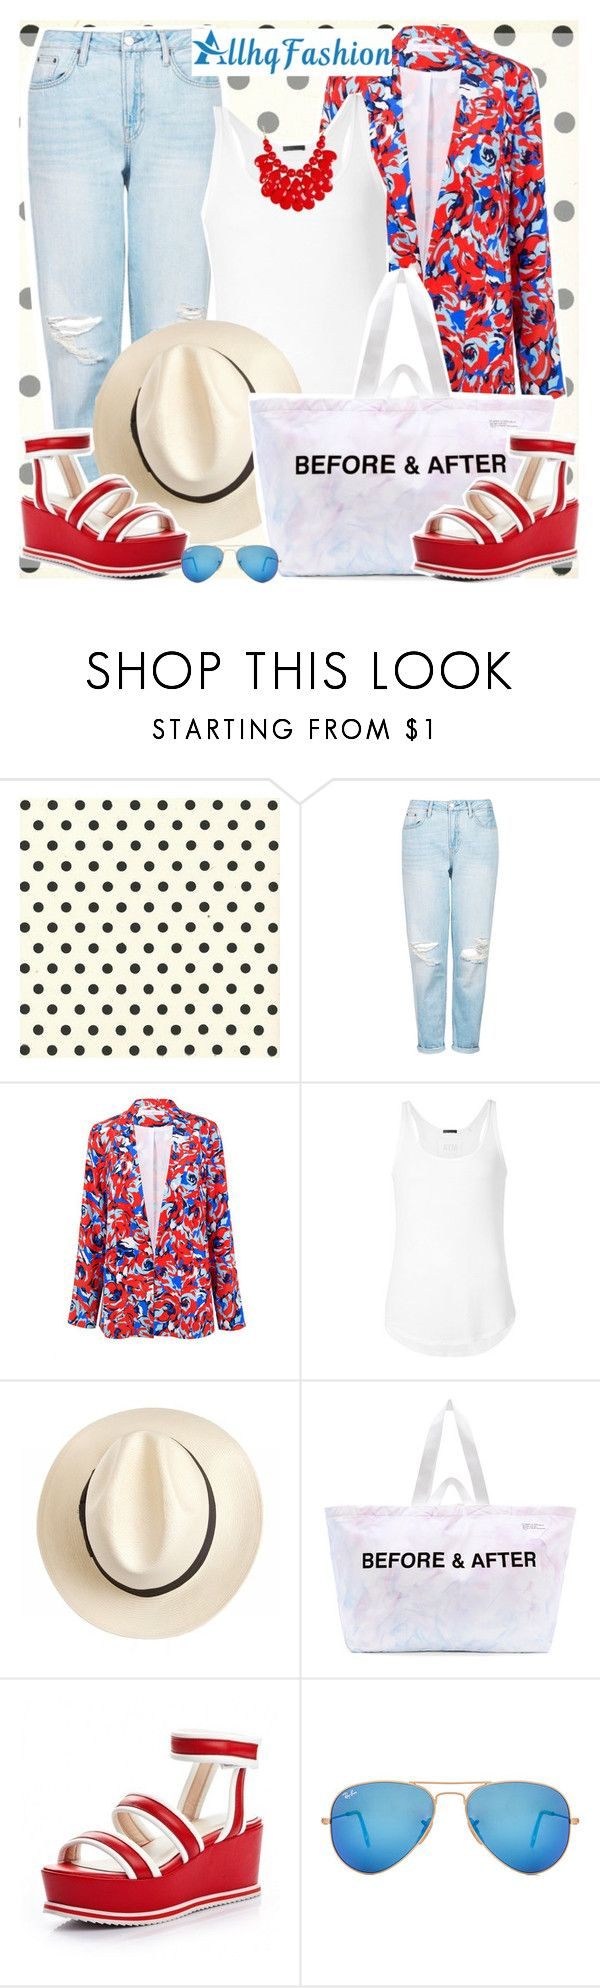 """1330. ALLHQFASHION Shoes!"" by marymary91 ❤ liked on Polyvore featuring Topshop, Alice & Trixie, ATM by Anthony Thomas Melillo, Whiteley, Off-White, Ray-Ban and allhqfashion"